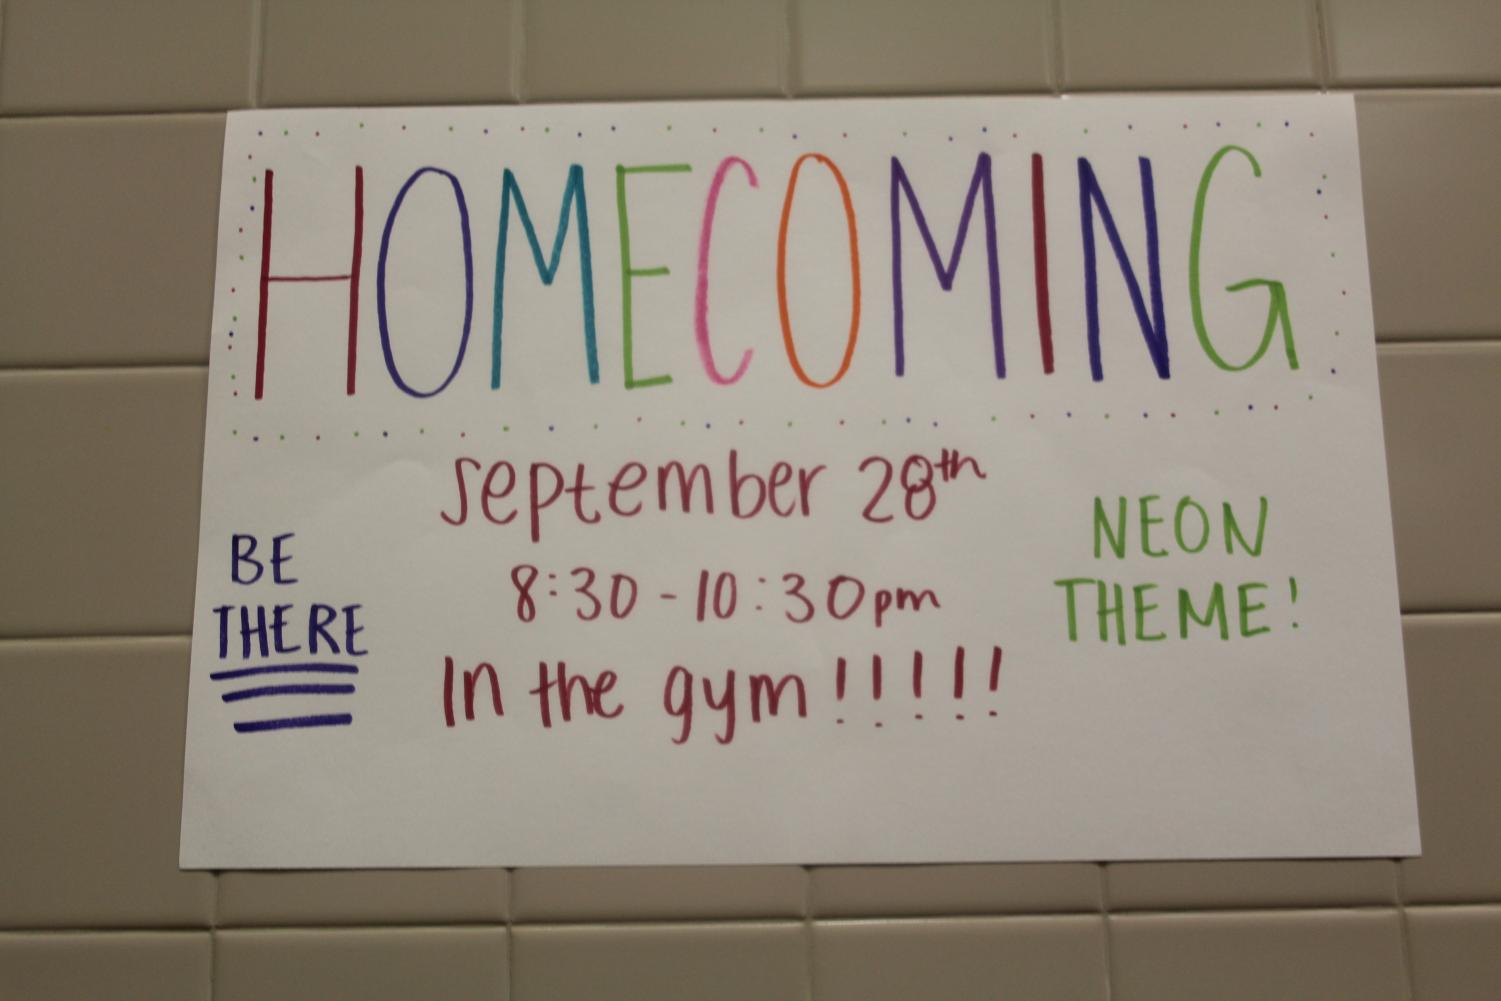 This year's Homecoming Dance theme is